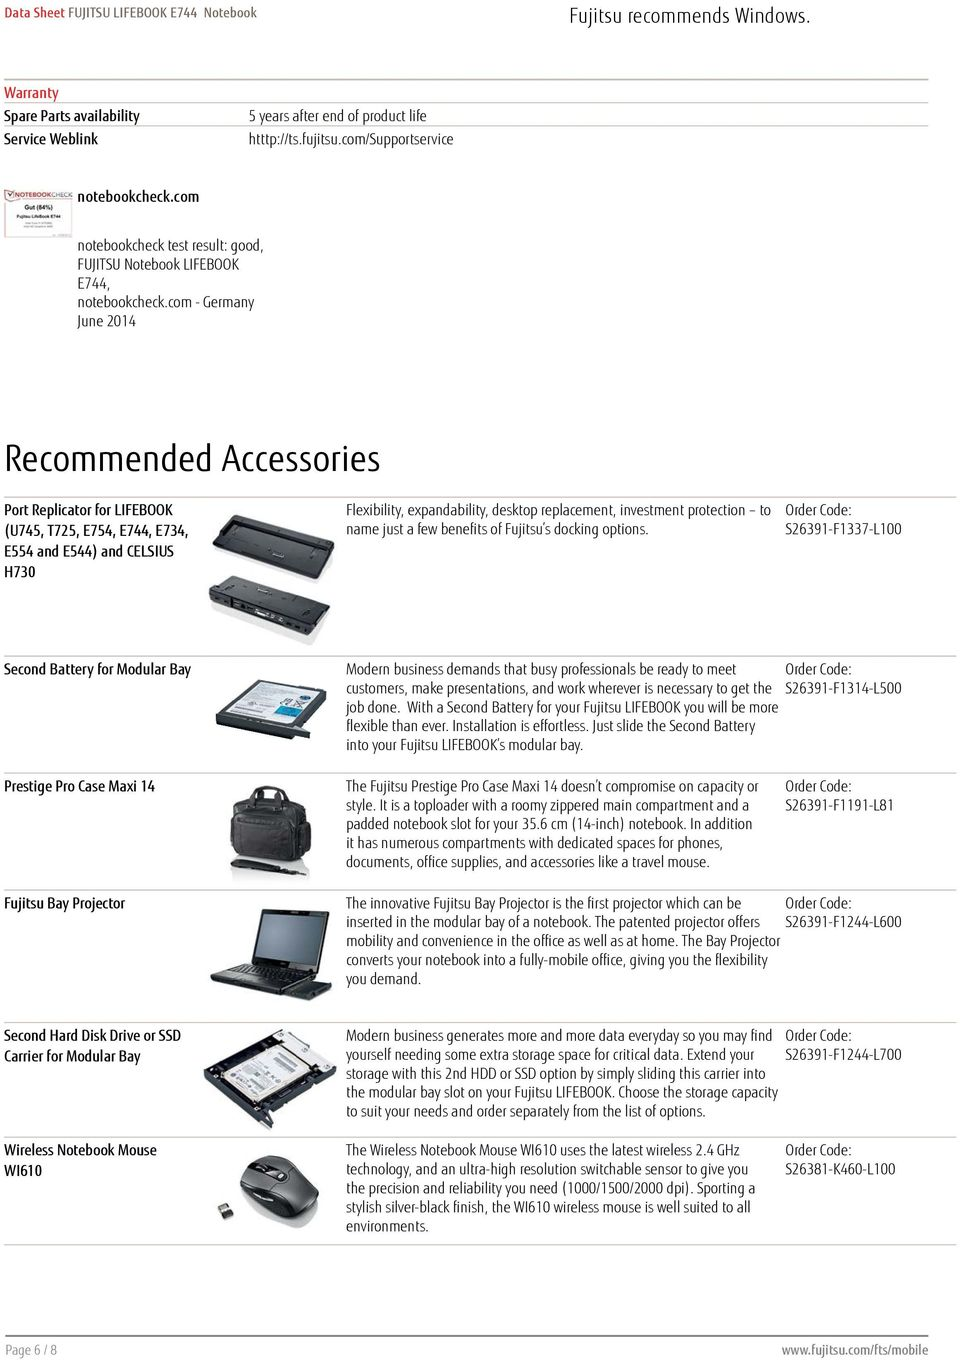 com - Germany June 2014 Recommended Accessories Port Replicator for LIFEBOOK (U745, T725, E754, E744, E734, E554 and E544) and CELSIUS H730 Flexibility, expandability, desktop replacement, investment